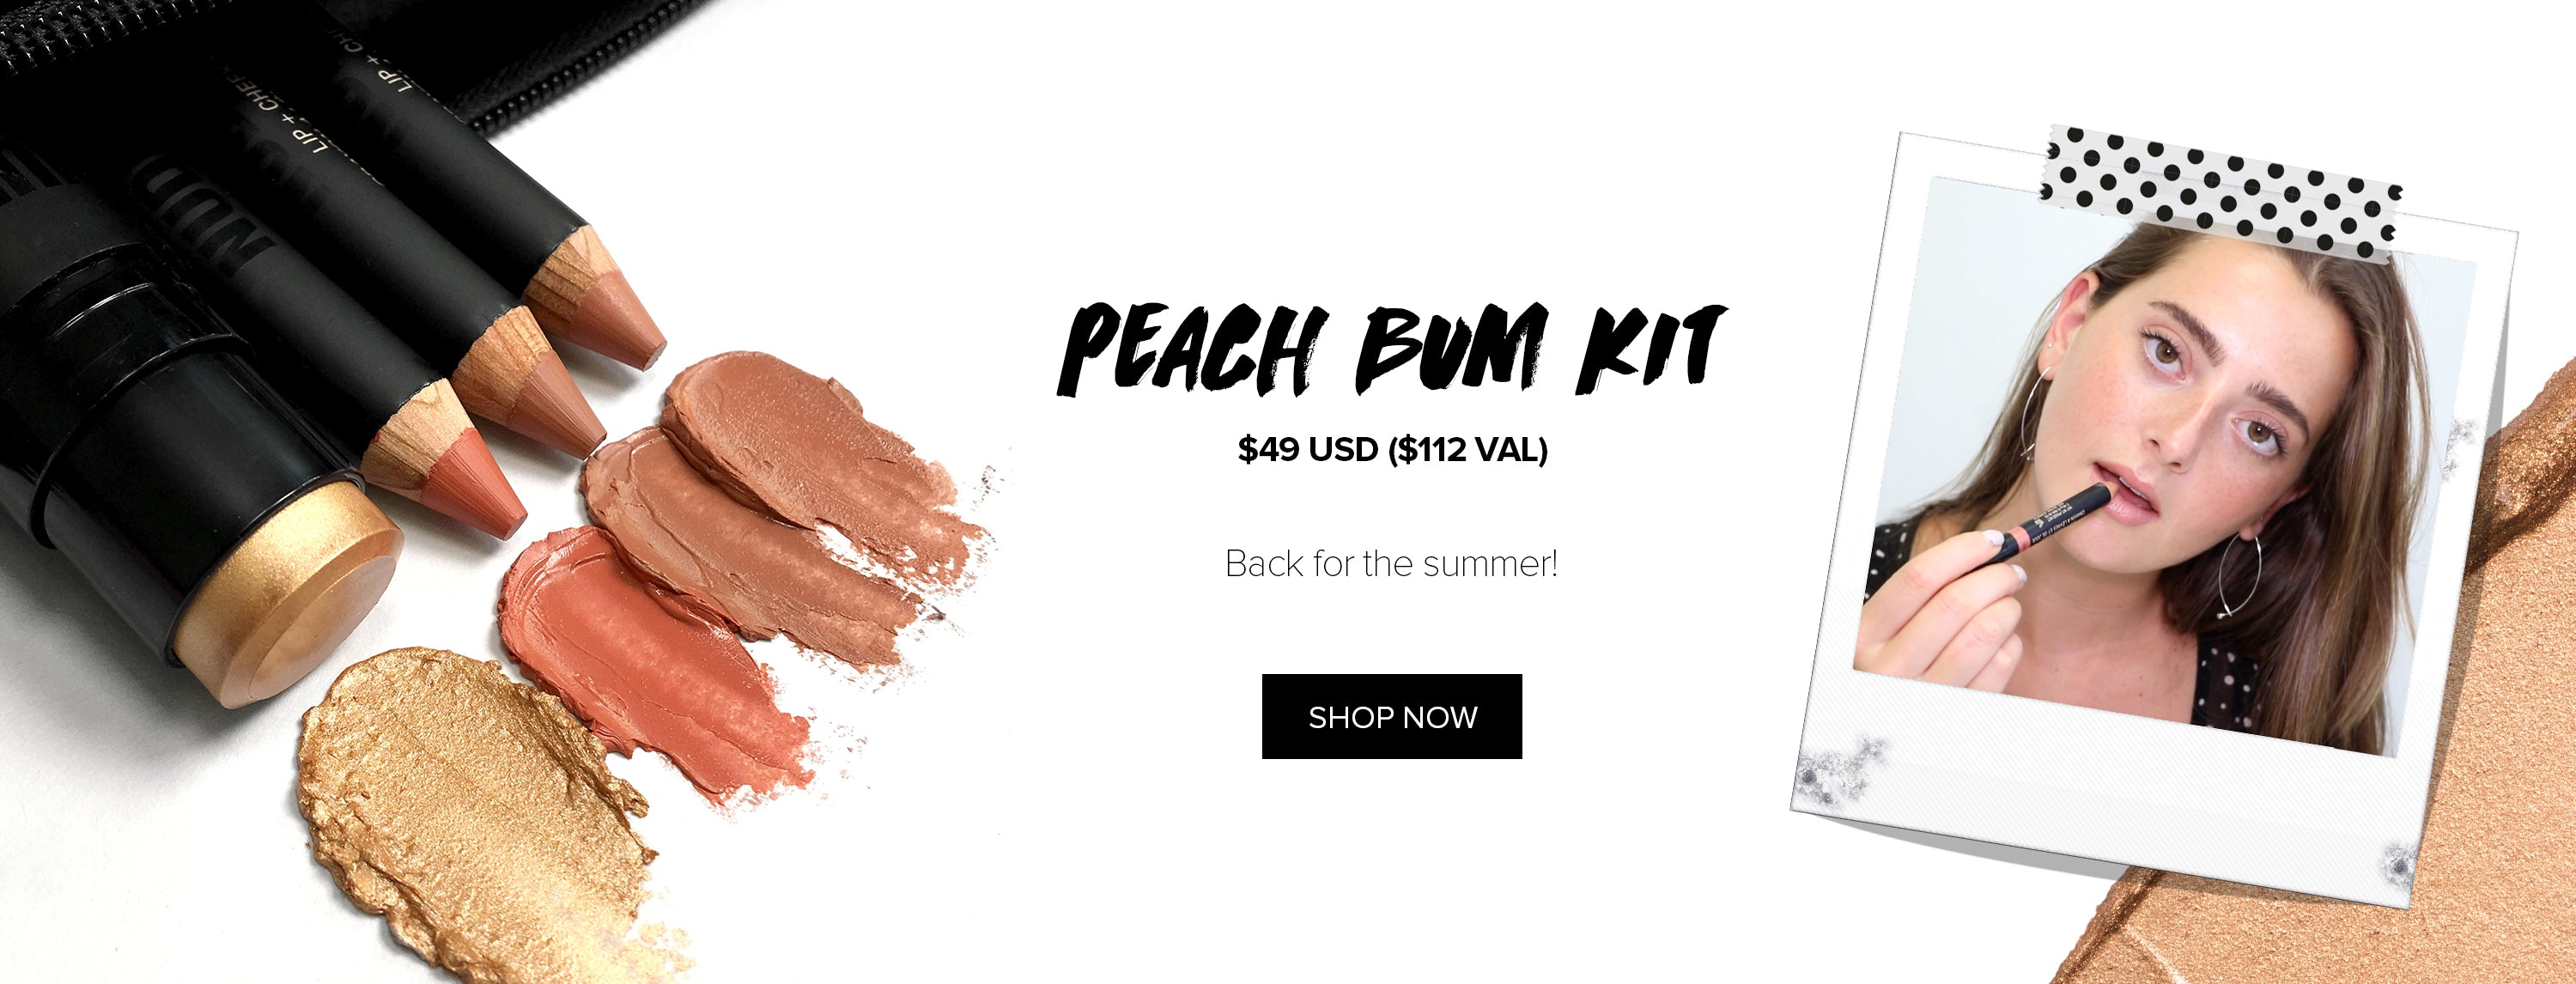 Peach Bum Kit